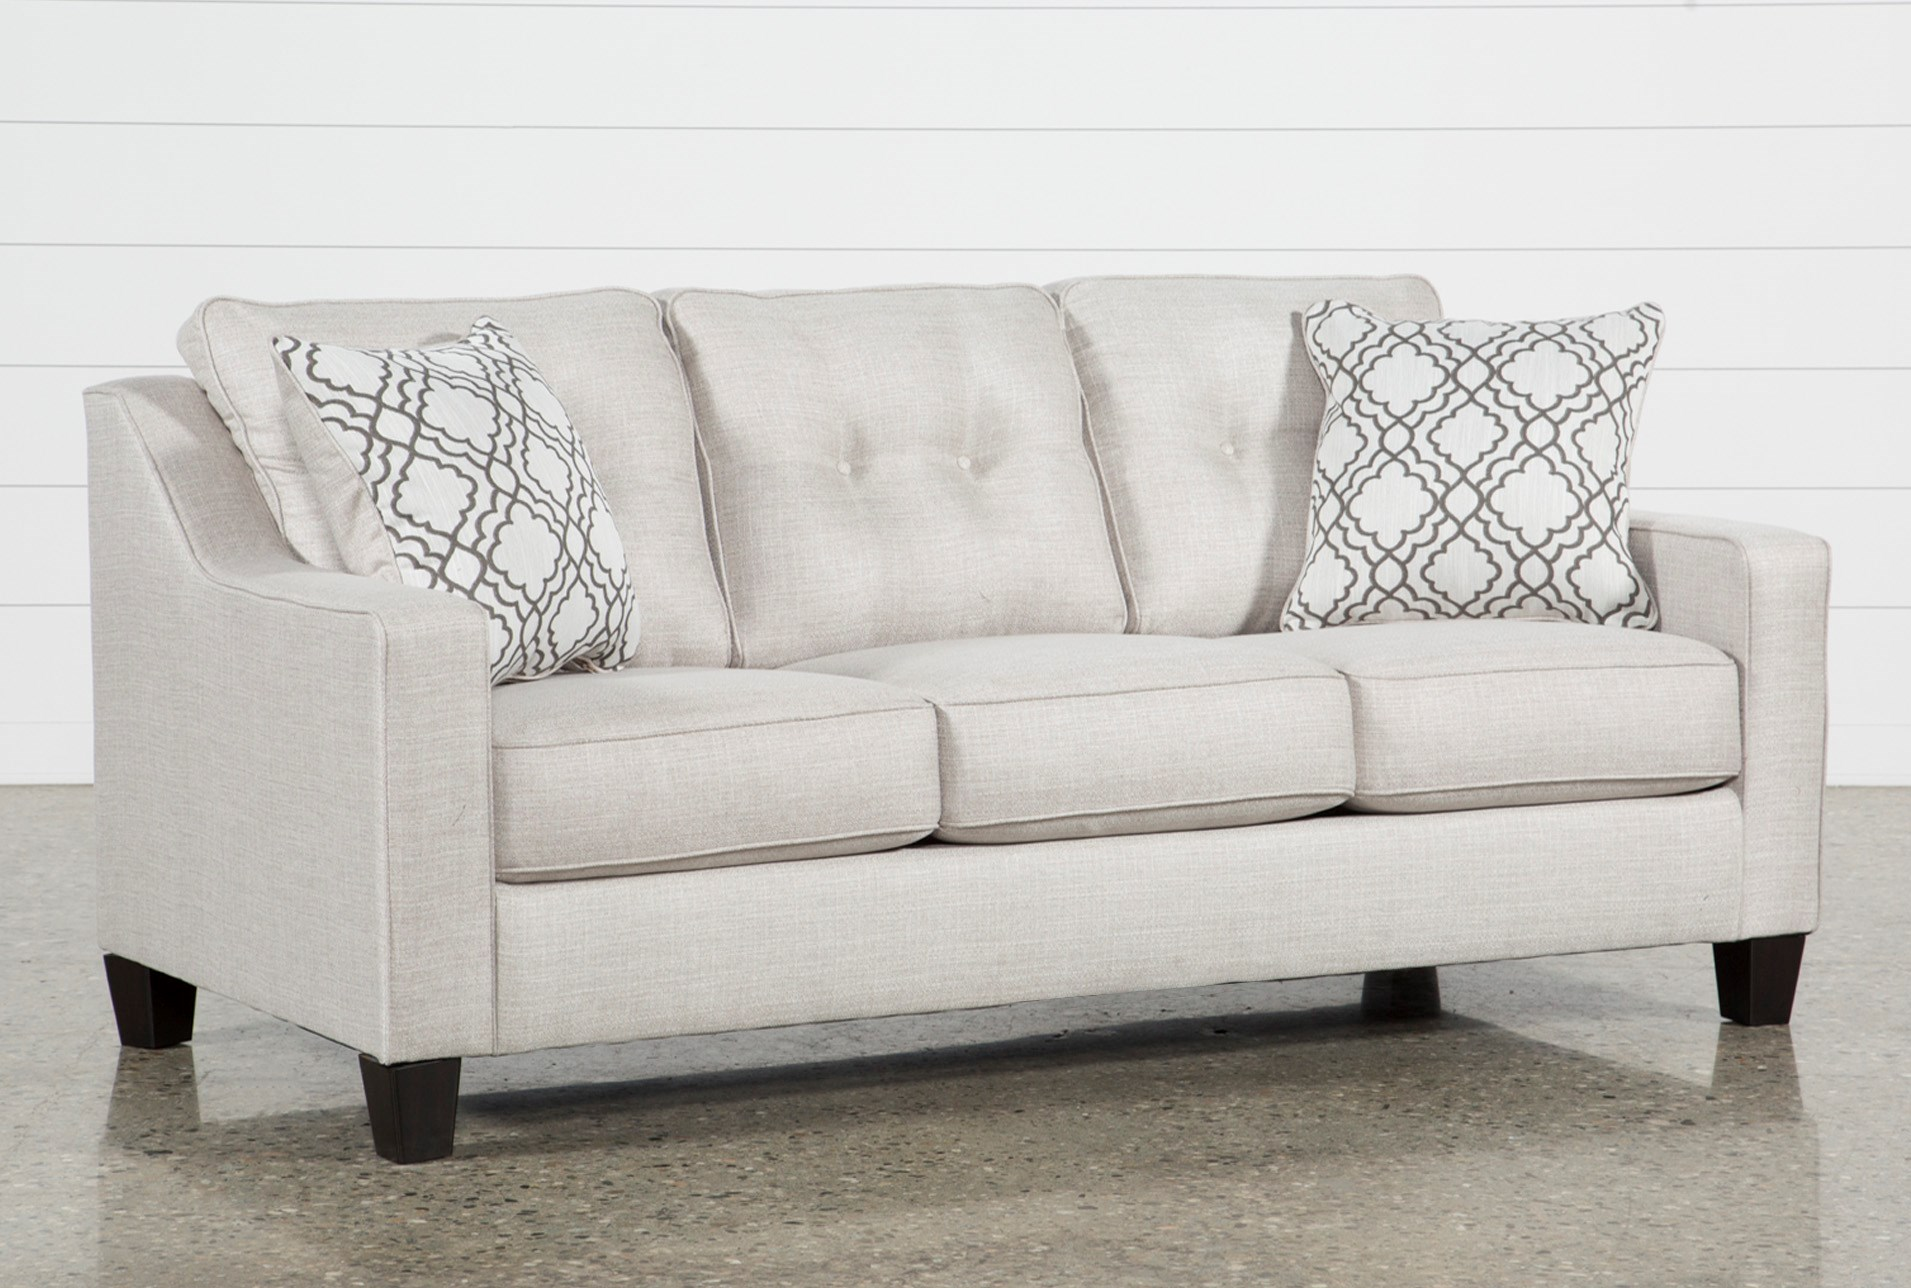 Linday Park Sofa | Living Spaces